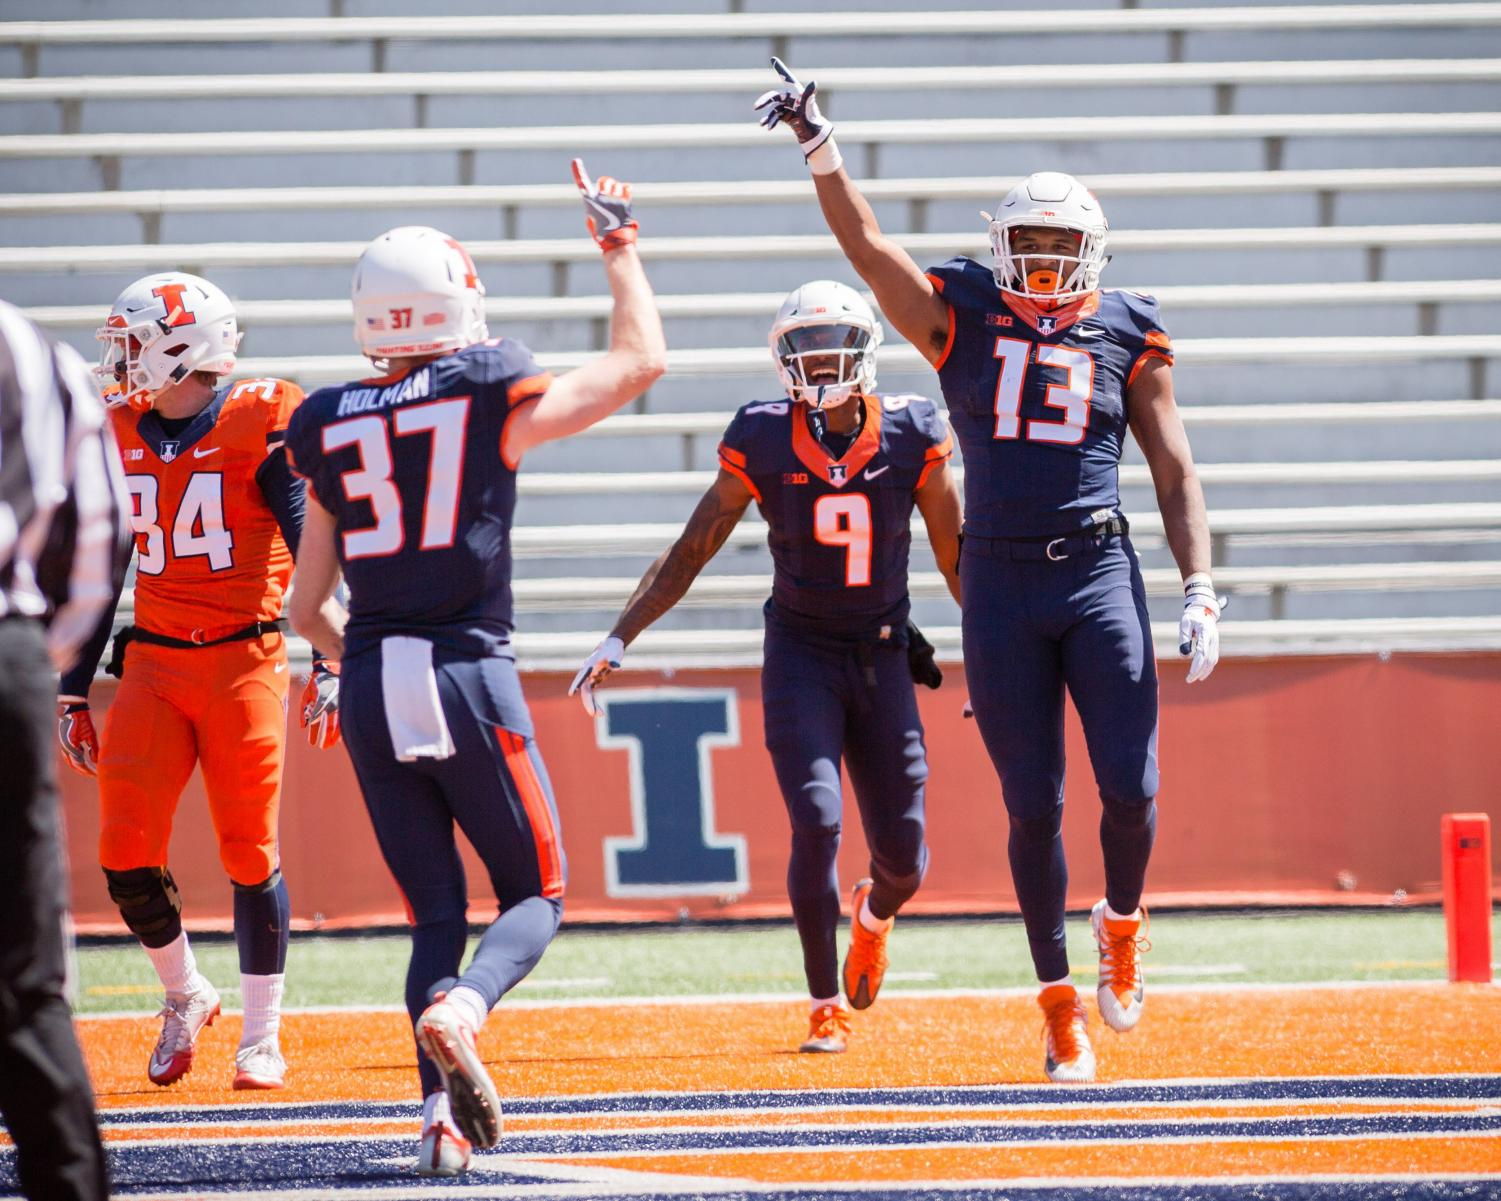 Illinois football held an open spring practice on Sunday. Community members came to watch the team run through practice drills and a scrimmage